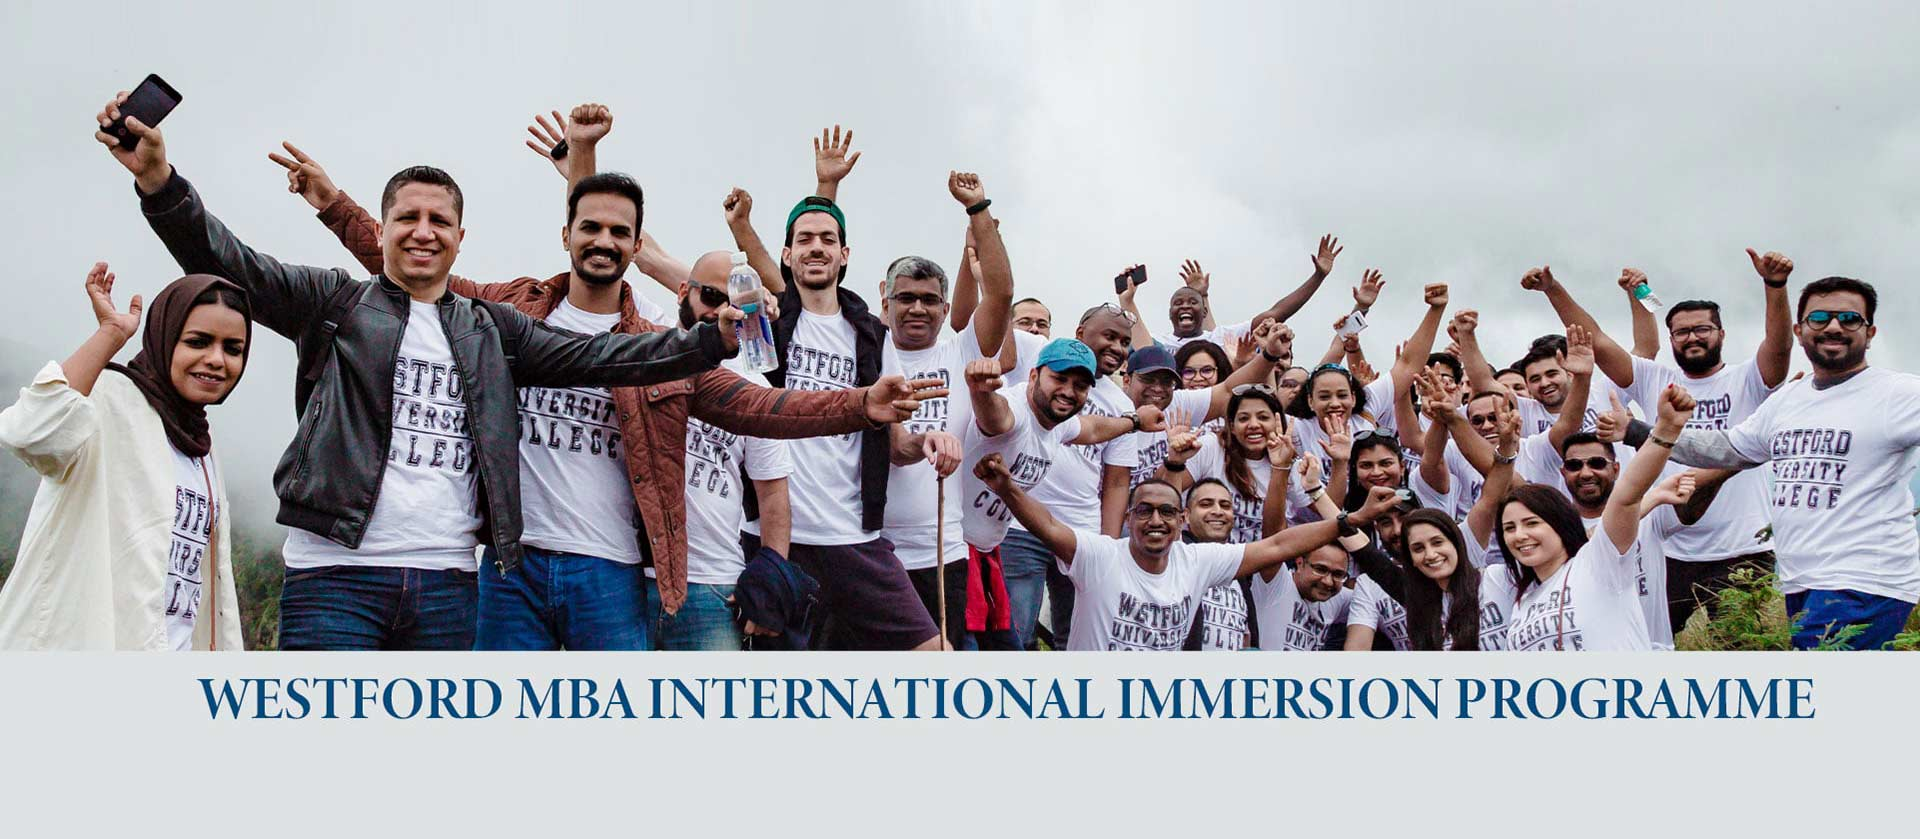 International Immersion Program